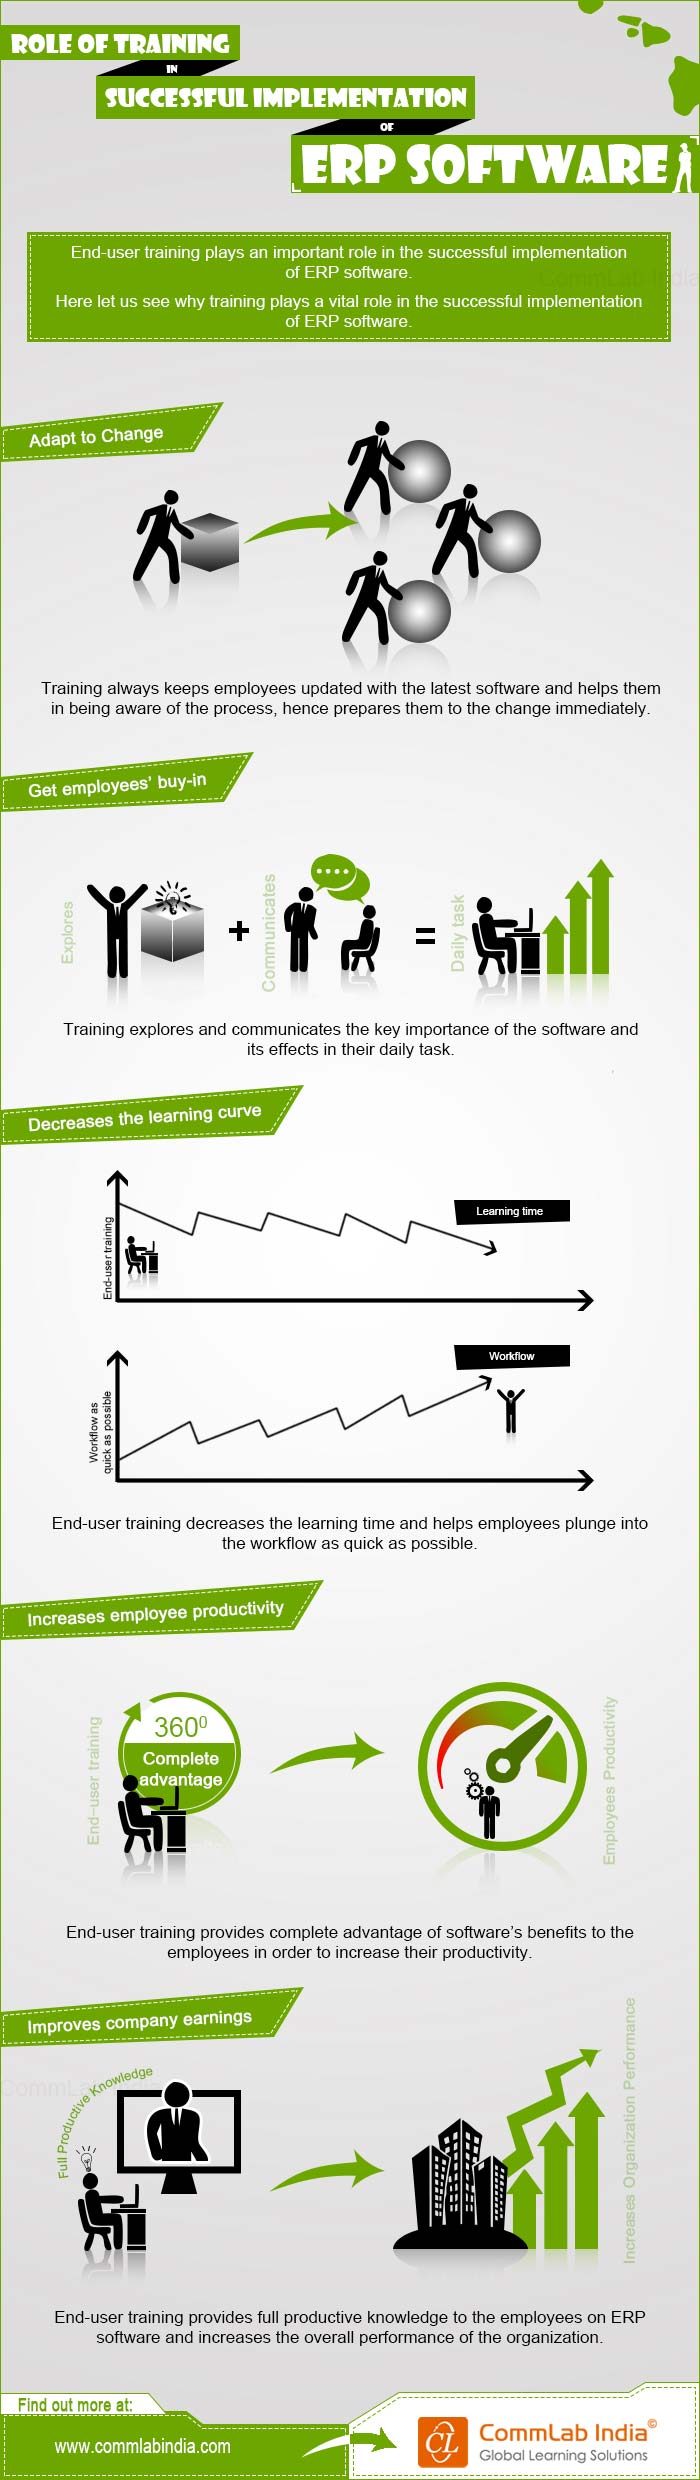 Role of Training in Successful Implementation of ERP System [Infographic]